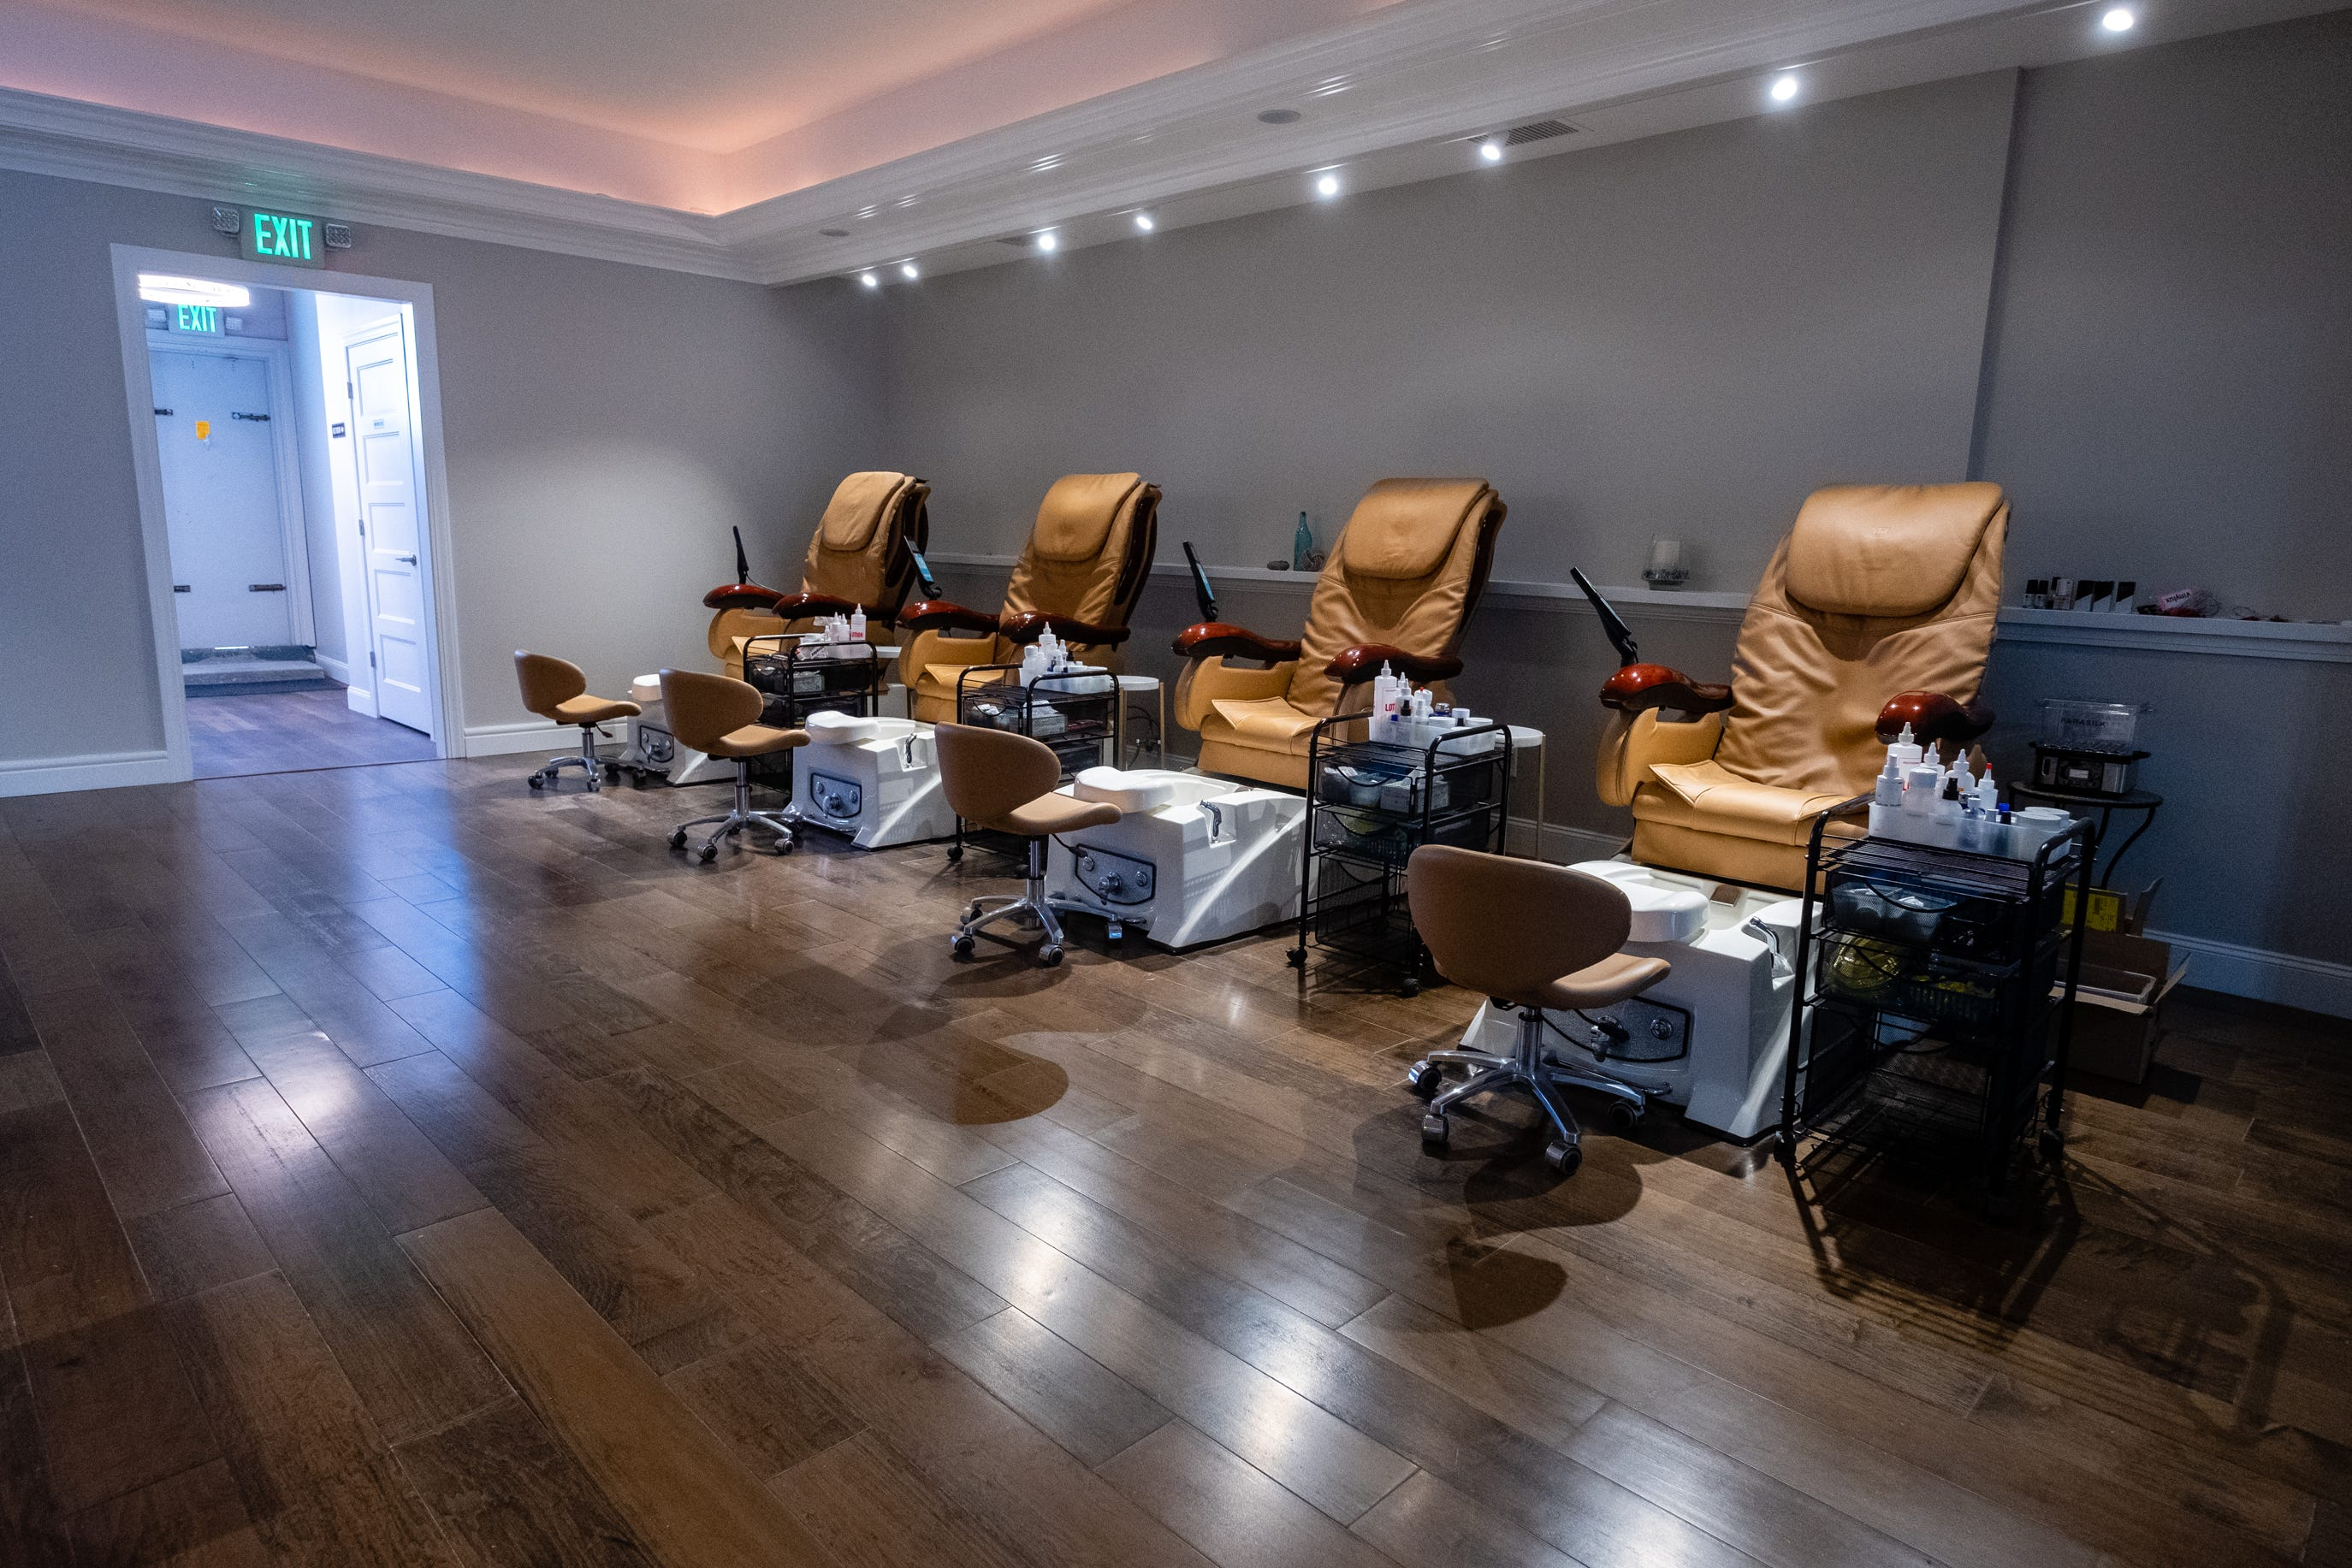 Spa Blu plans to open in downtown Port Huron this November